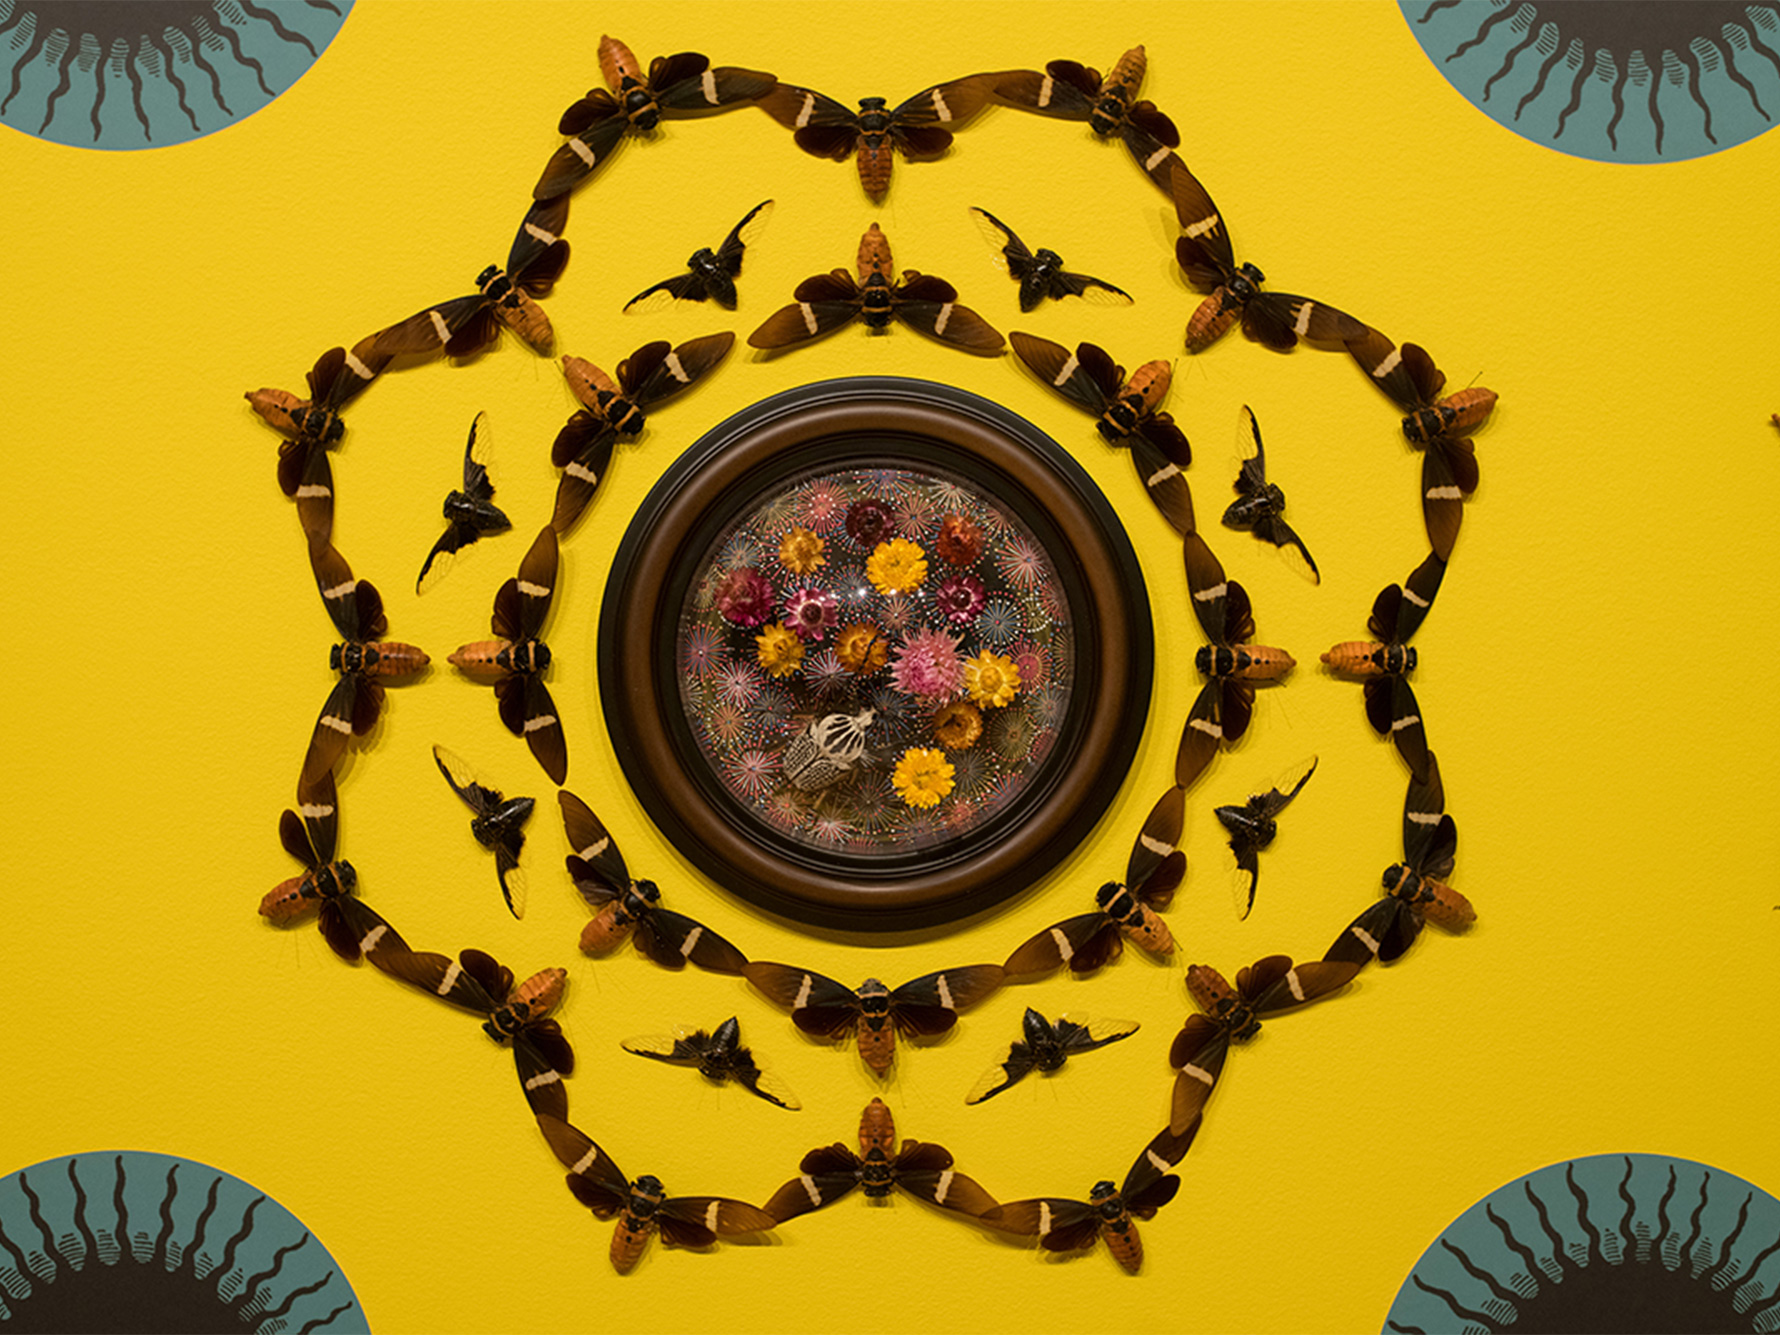 Yellow background with insects pinned in a kaleidoscope pattern.